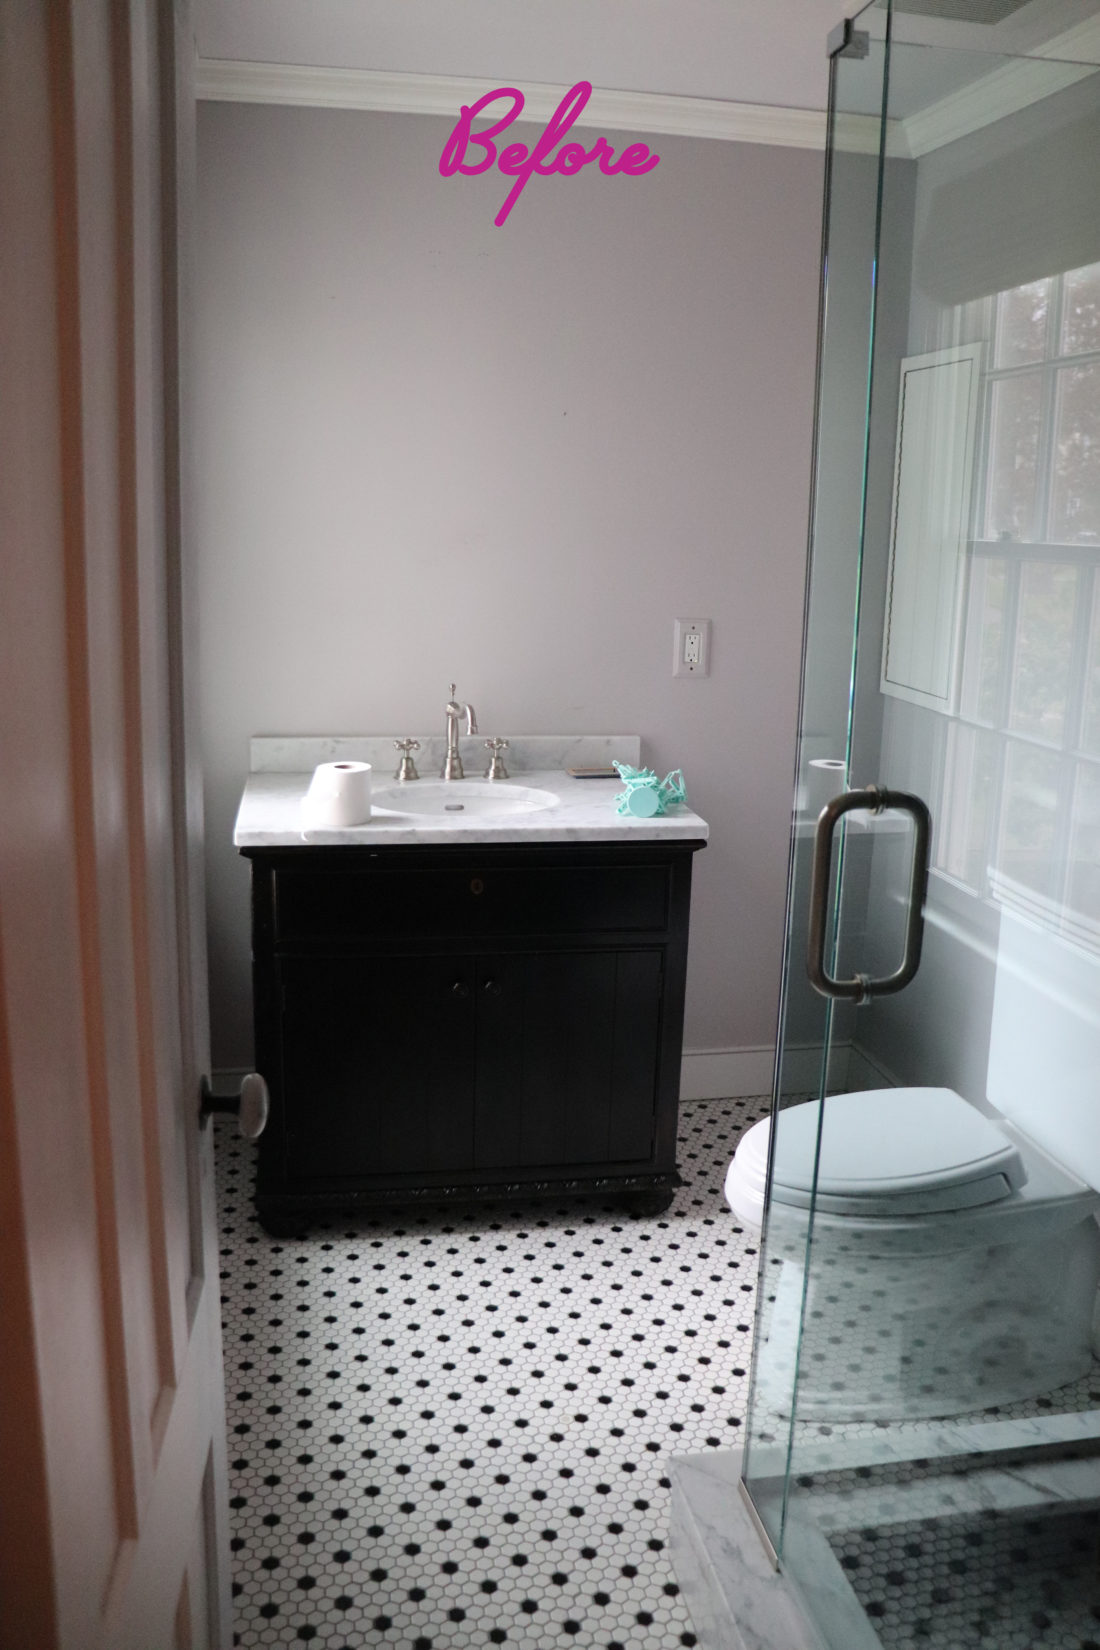 A 'before' image of Major James Martino's bathroom prior to renovation